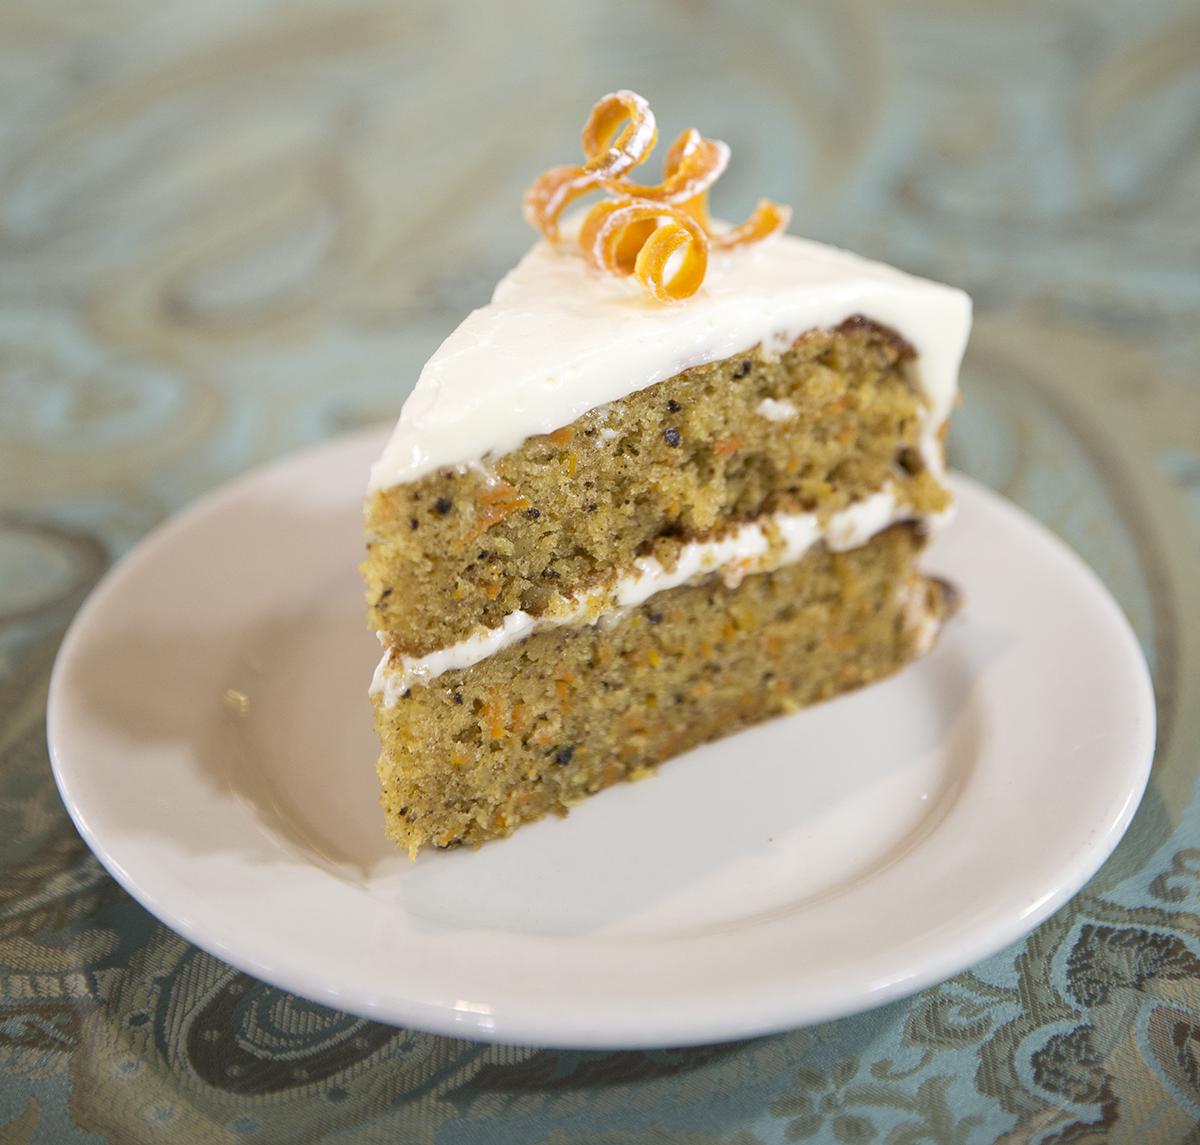 Carrot Cake at Relics Antique Mall's tea room.